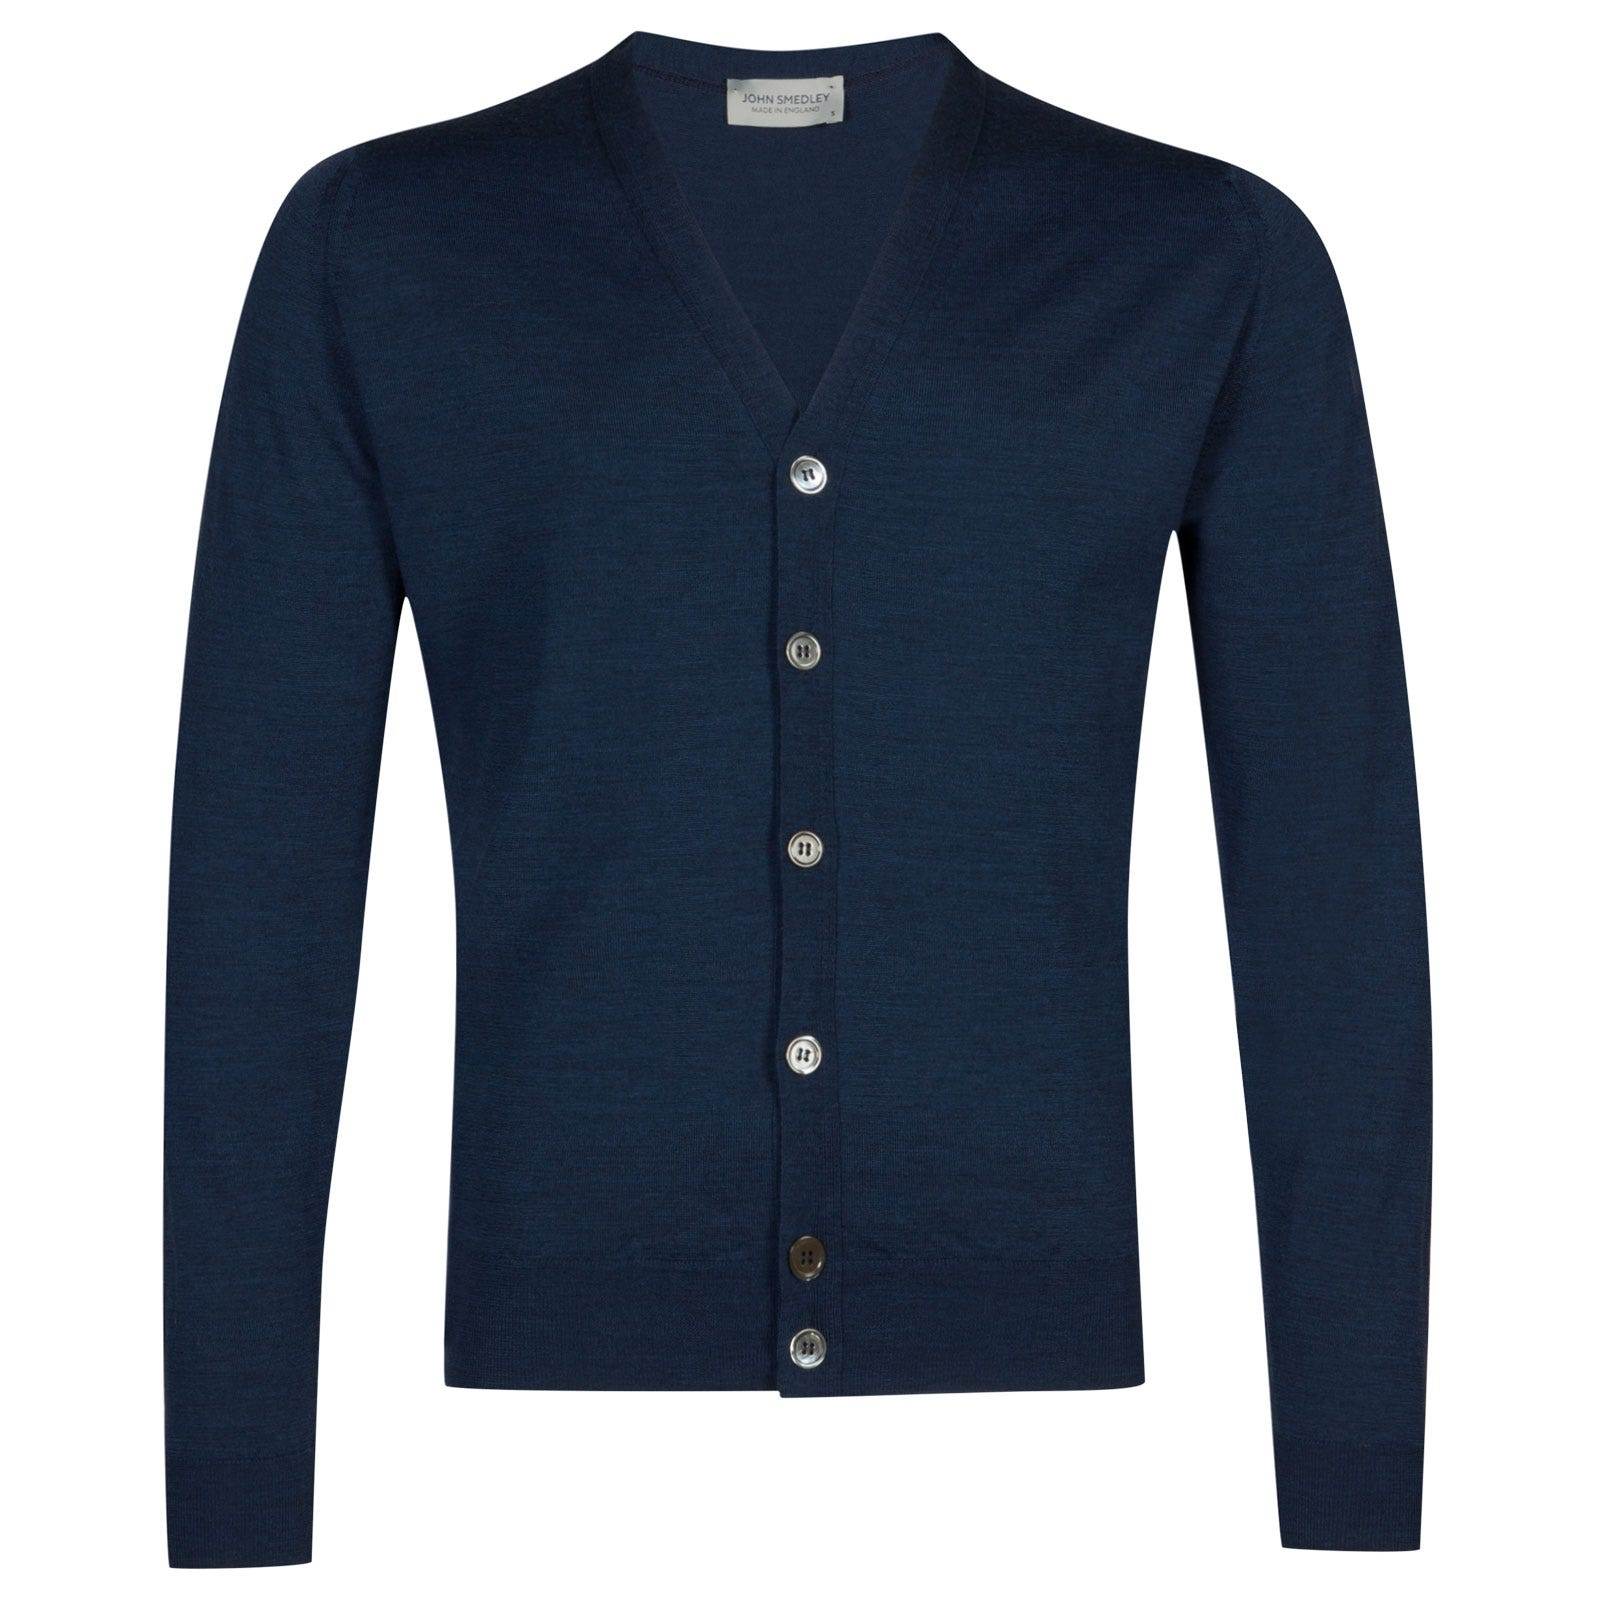 John Smedley naples Merino Wool Cardigan in Midnight-XL